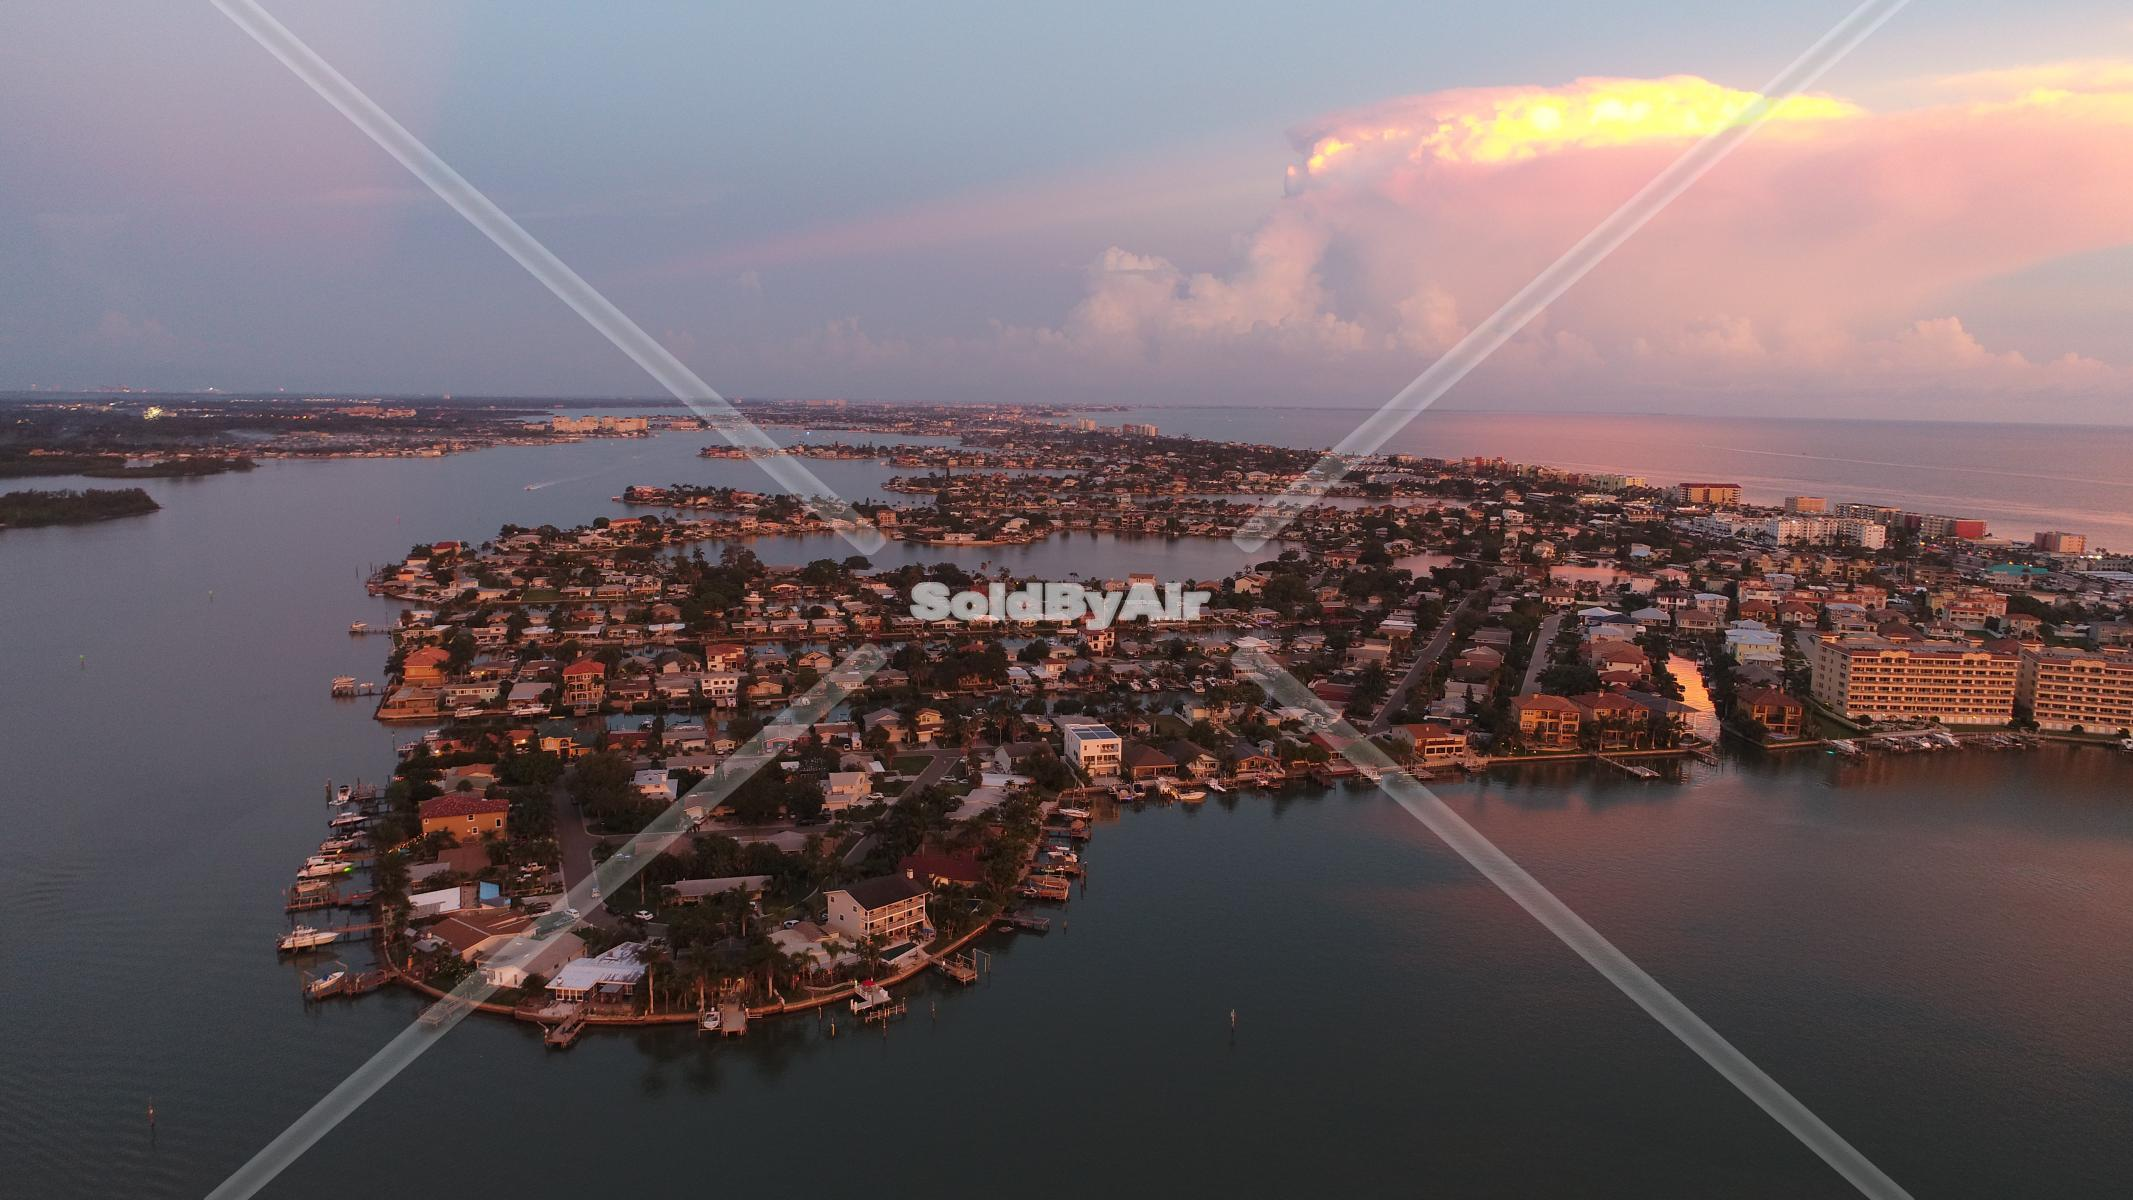 Drone Photo of Boca Ciega Bay and Gulf of Mexico looking south in Redington Shores Florida